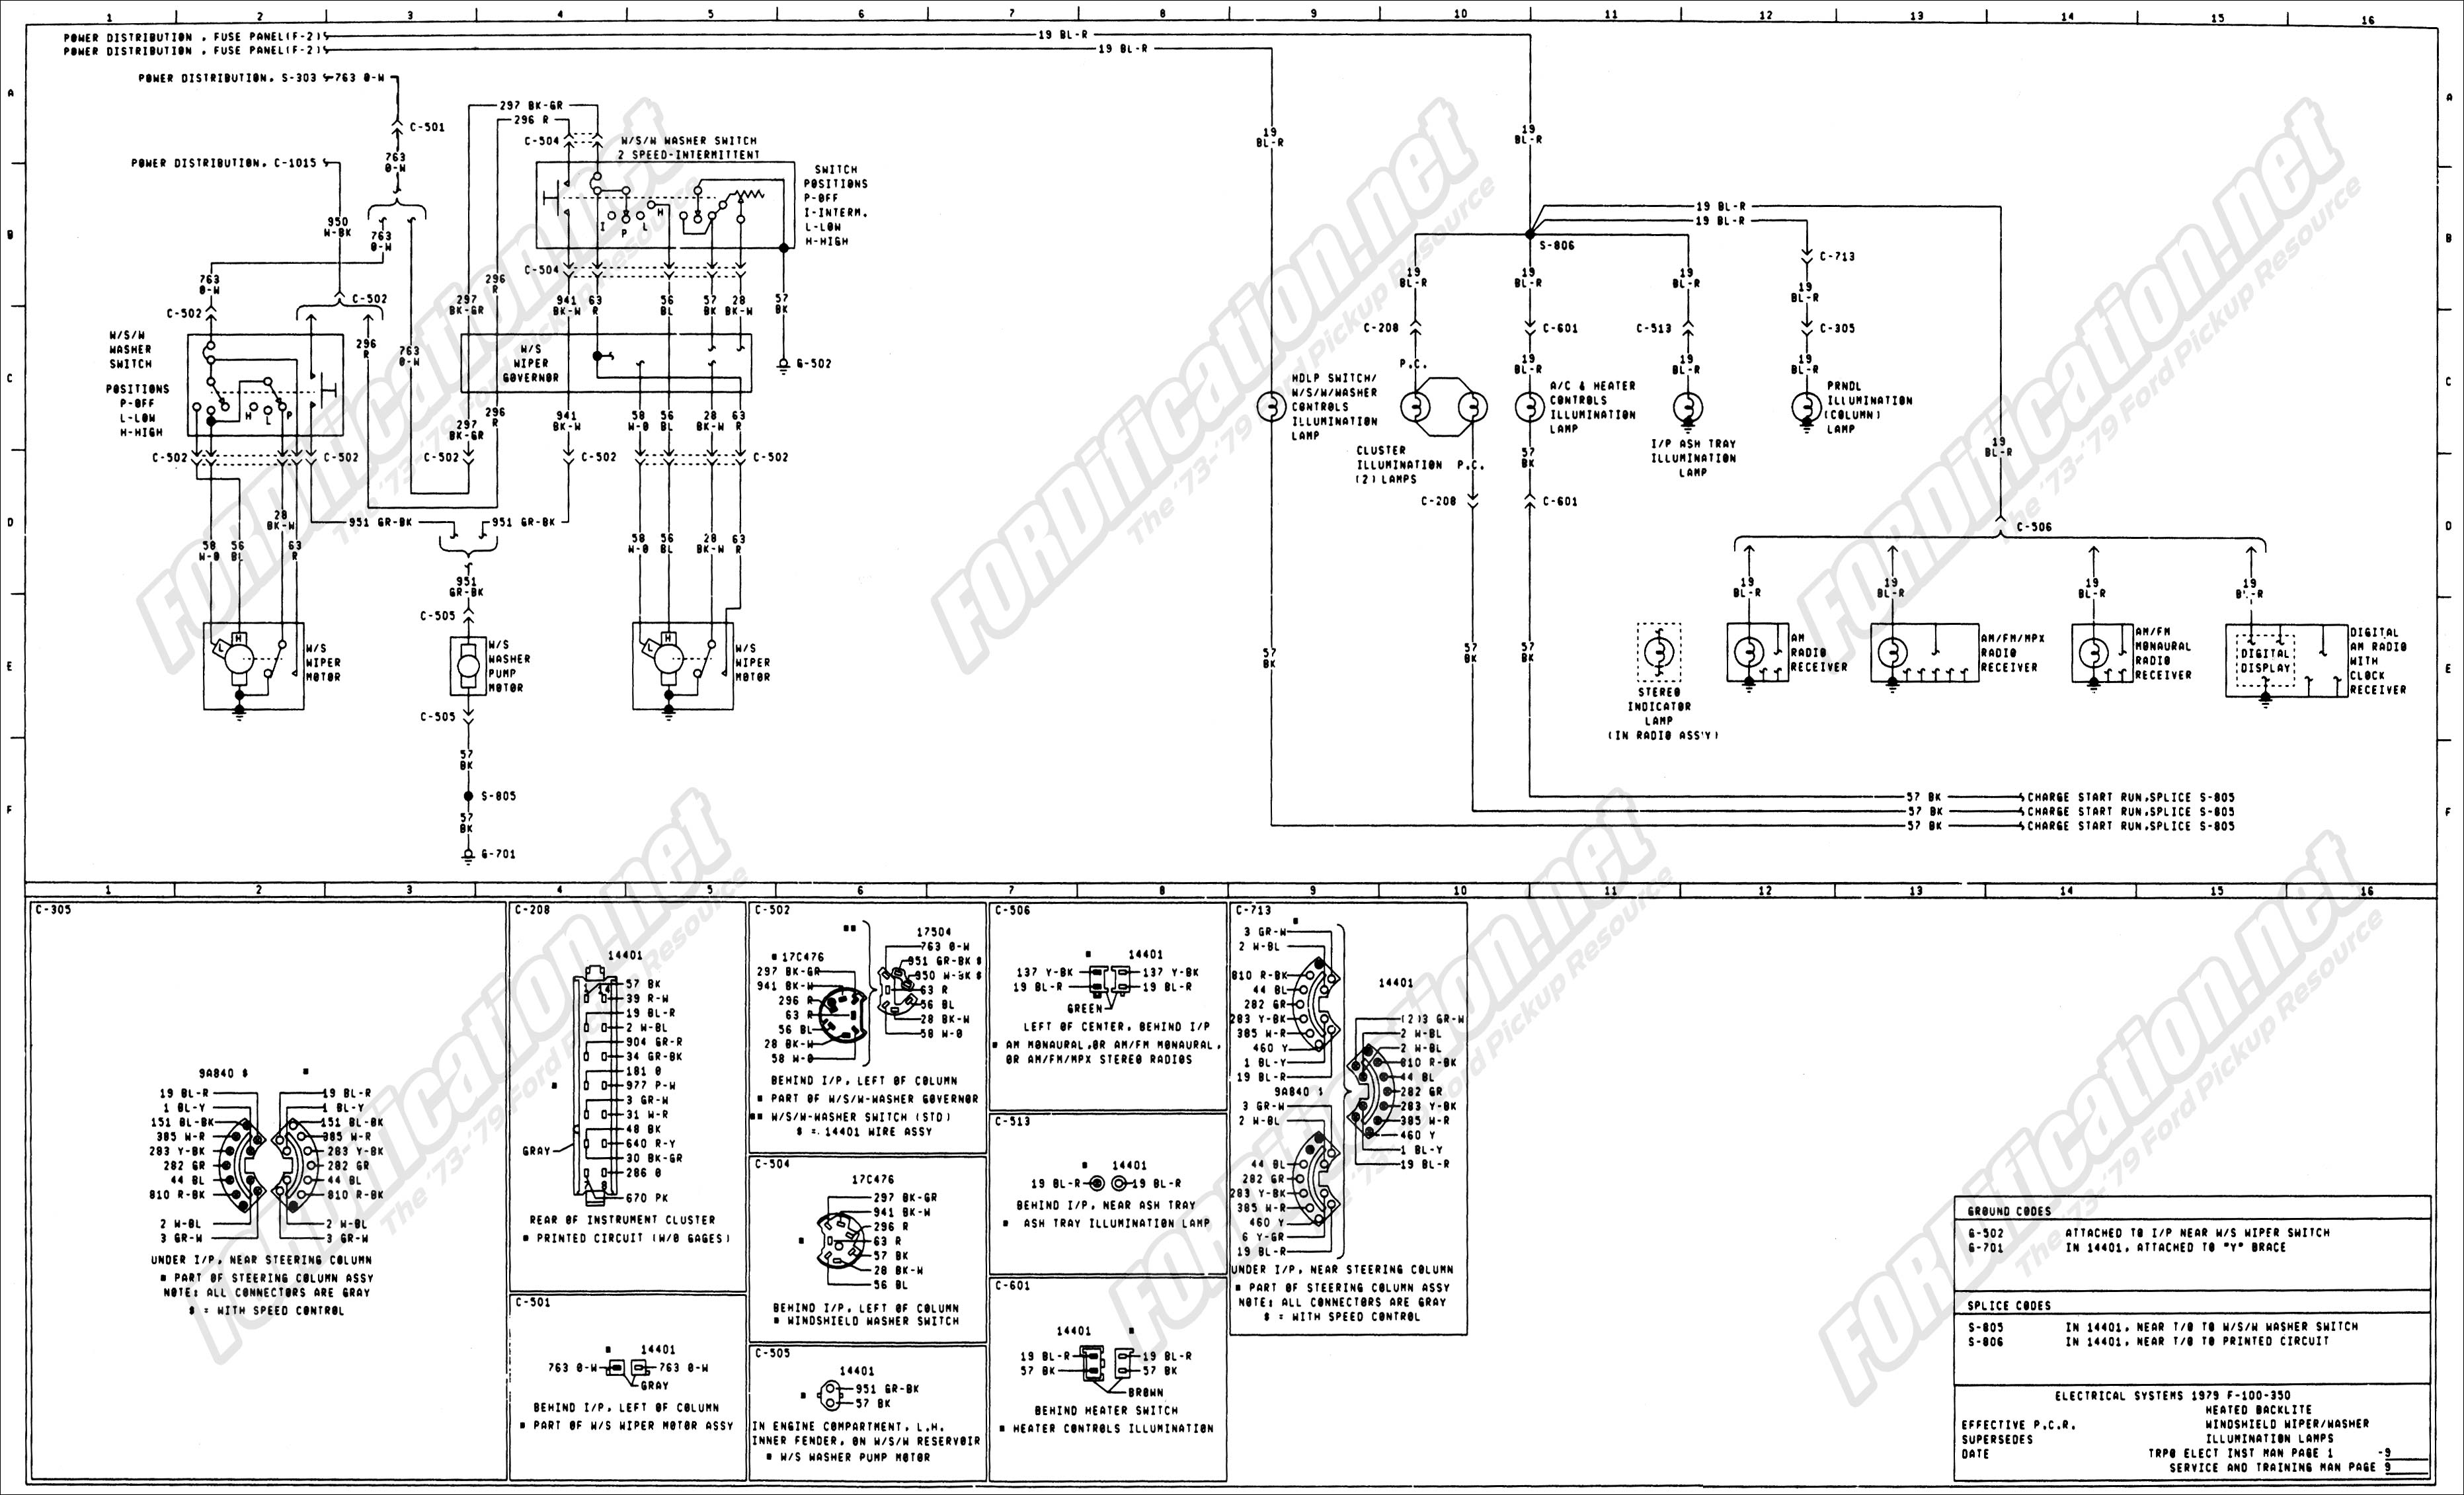 wiring_79master_9of9 1973 1979 ford truck wiring diagrams & schematics fordification net 1999 Ford F-250 Wiring Diagram at n-0.co